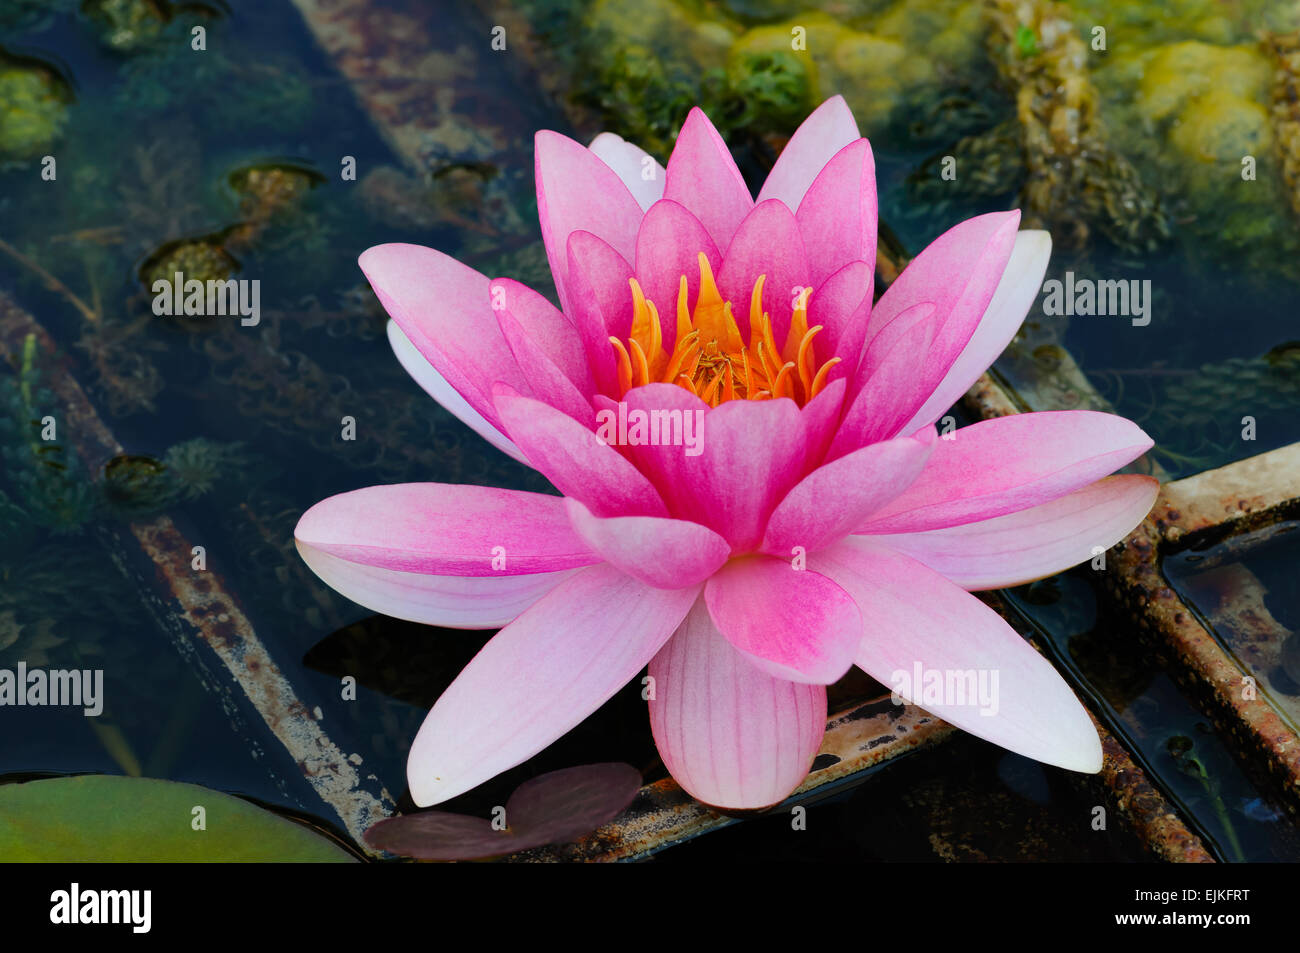 Lotus Flower Indian Water Lily In A Pond Stock Photo 80334796 Alamy